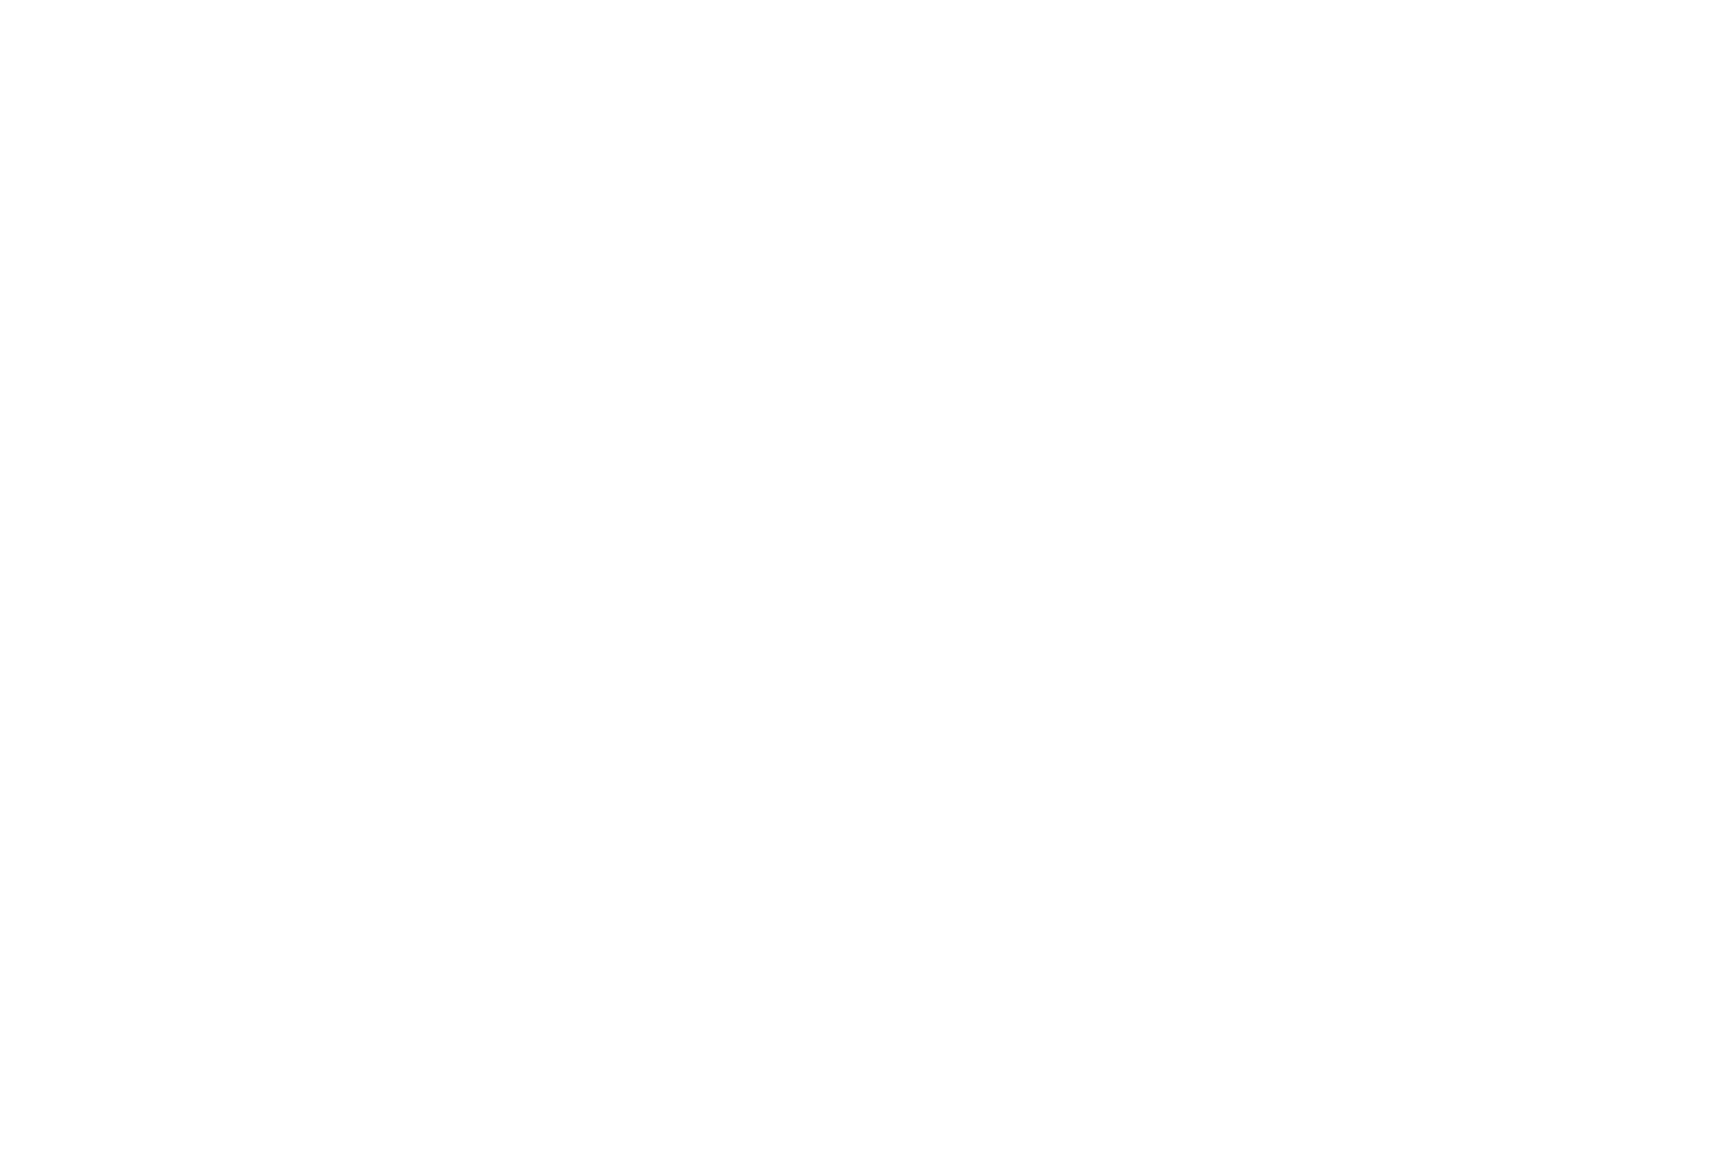 White - OFFICIAL SELECTION - Southern Oasis Film Festival - 2019.png